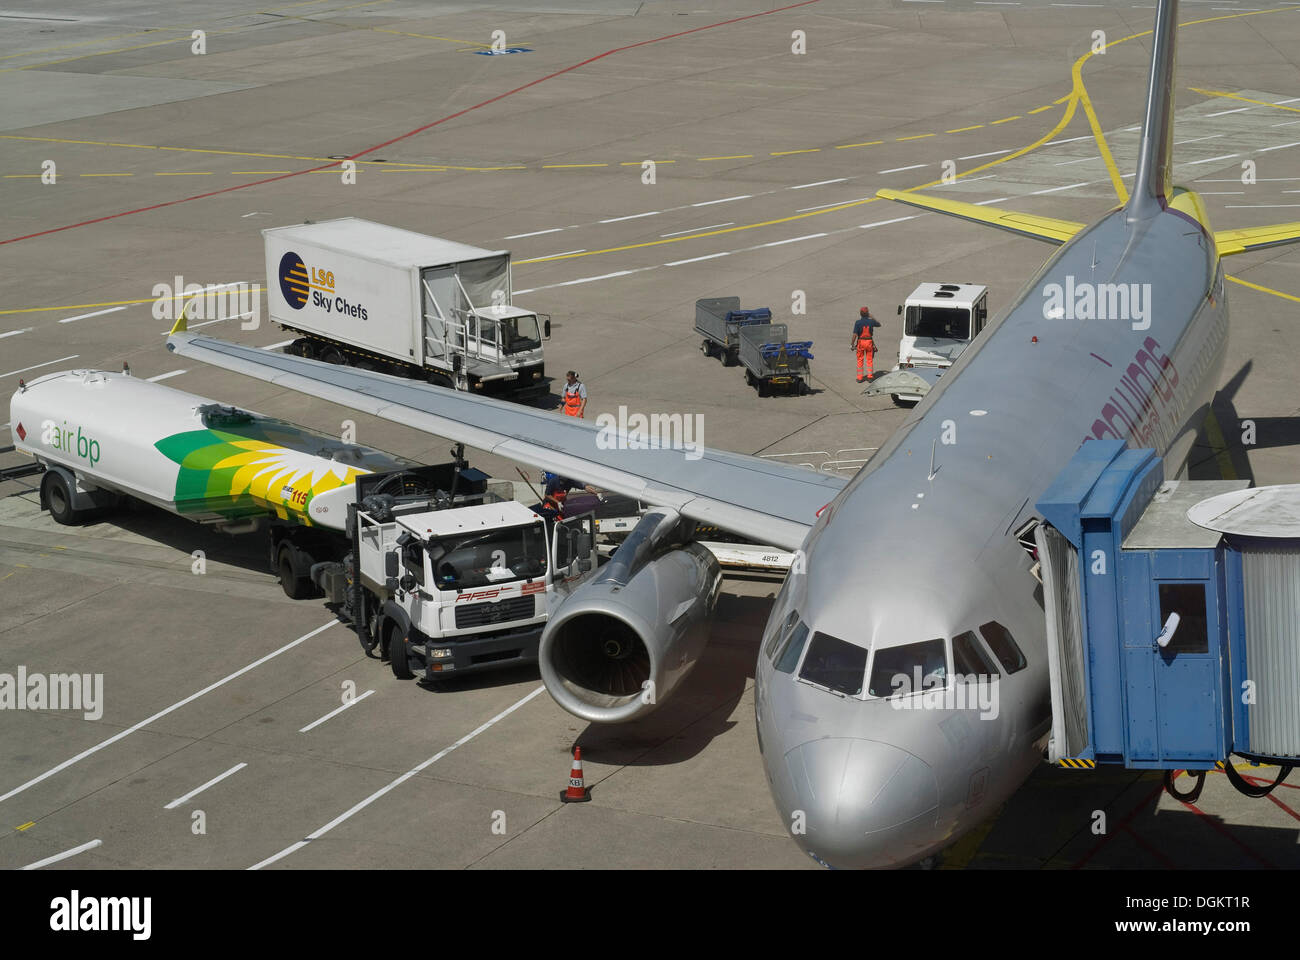 Airplane connected to a gangway, being refueled with service vehicles, apron, Cologne Bonn Airport, North Rhine - Stock Image